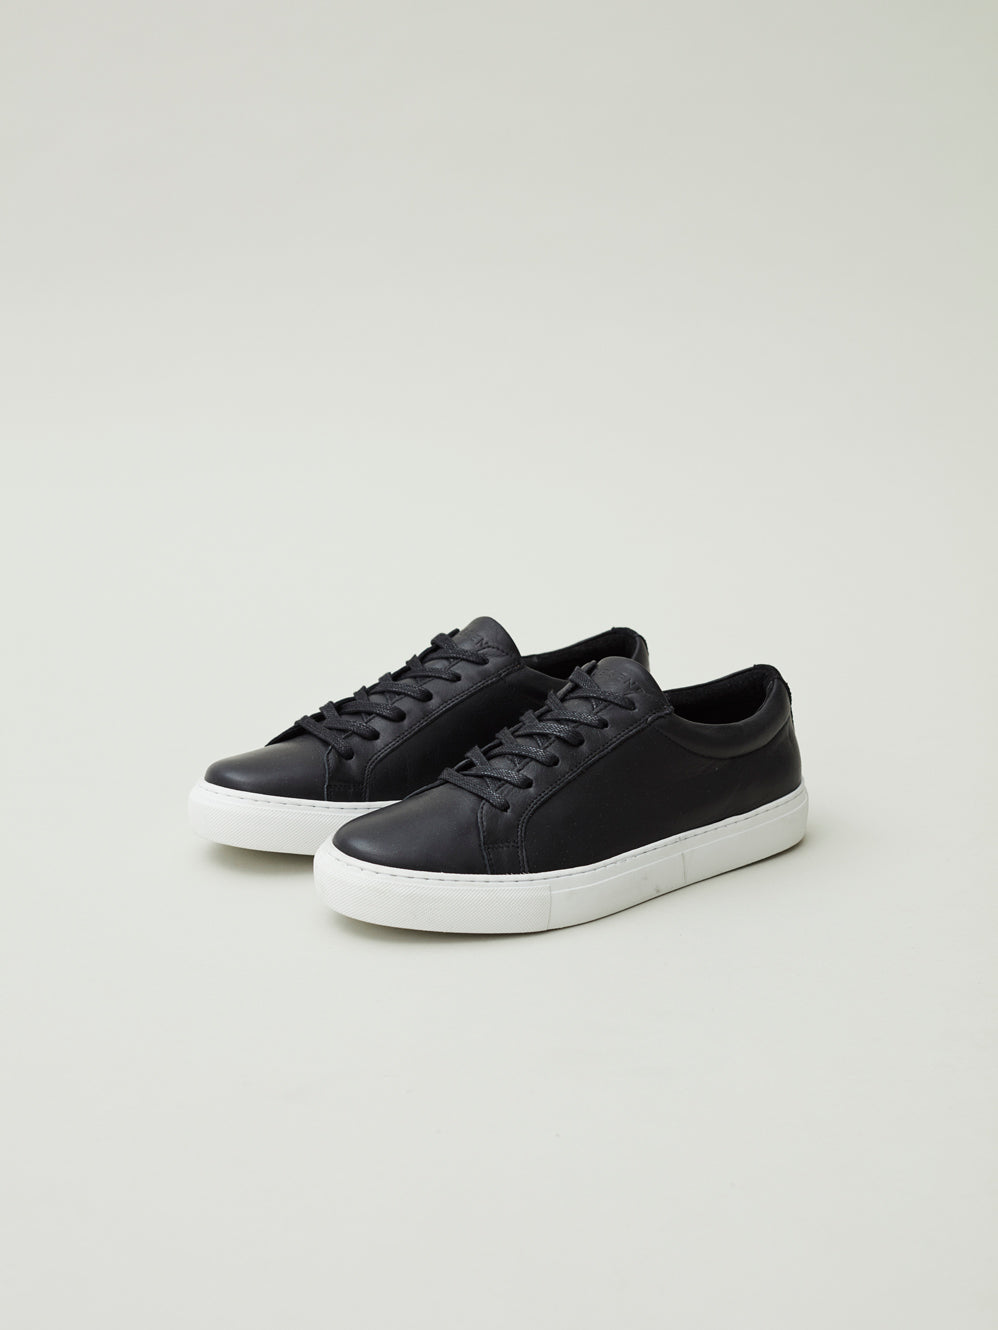 SAUVAGE LEATHER RESORT CLASSIC SNEAKERS